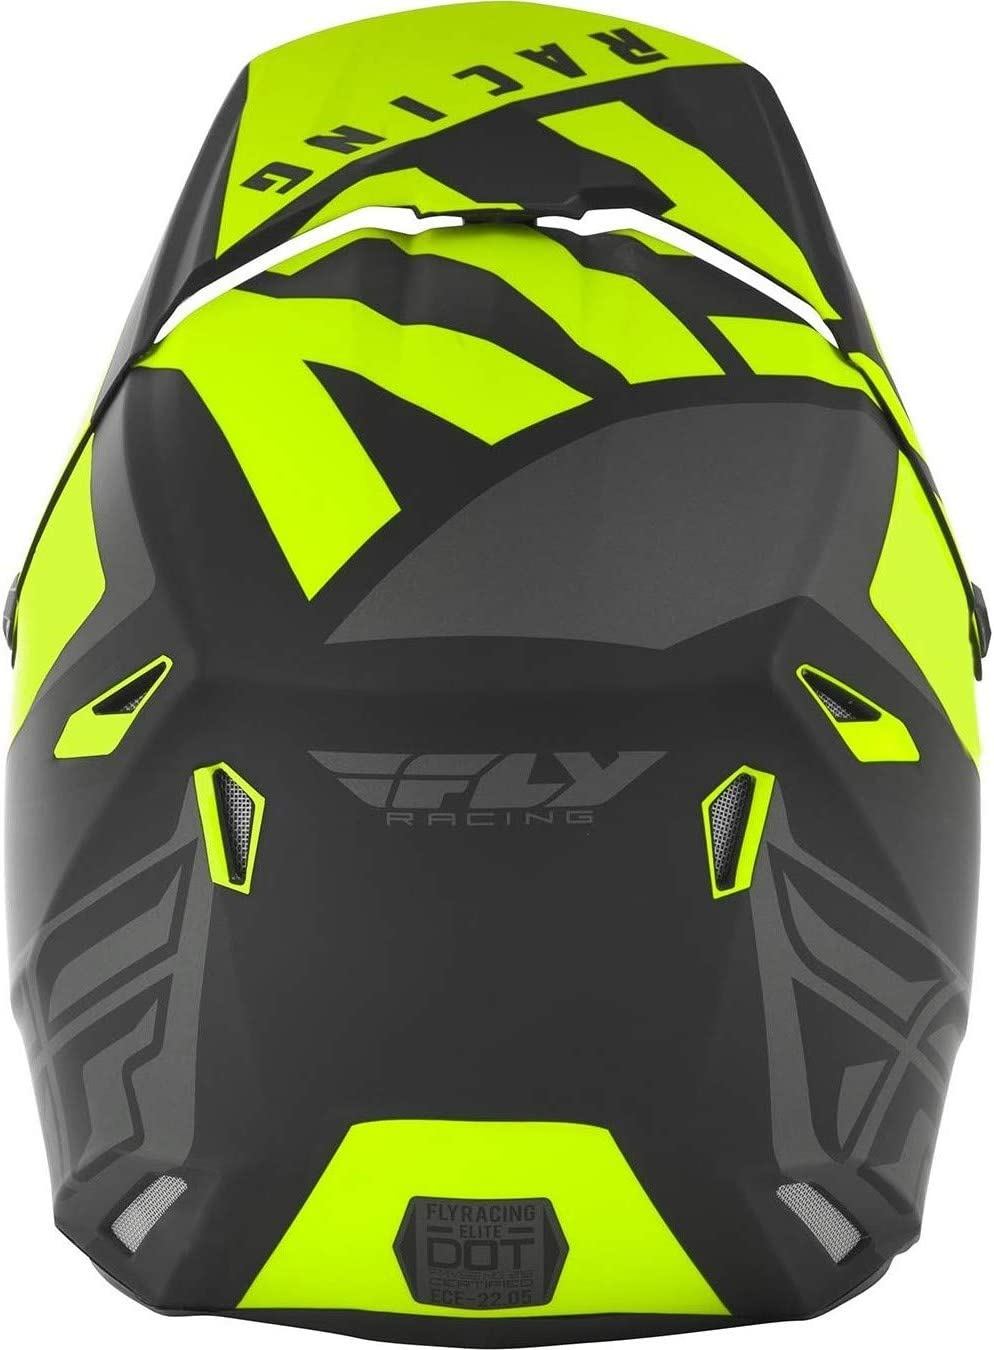 Orange//Black Medium Vigilant Fly Racing 2019 Youth Elite Helmet